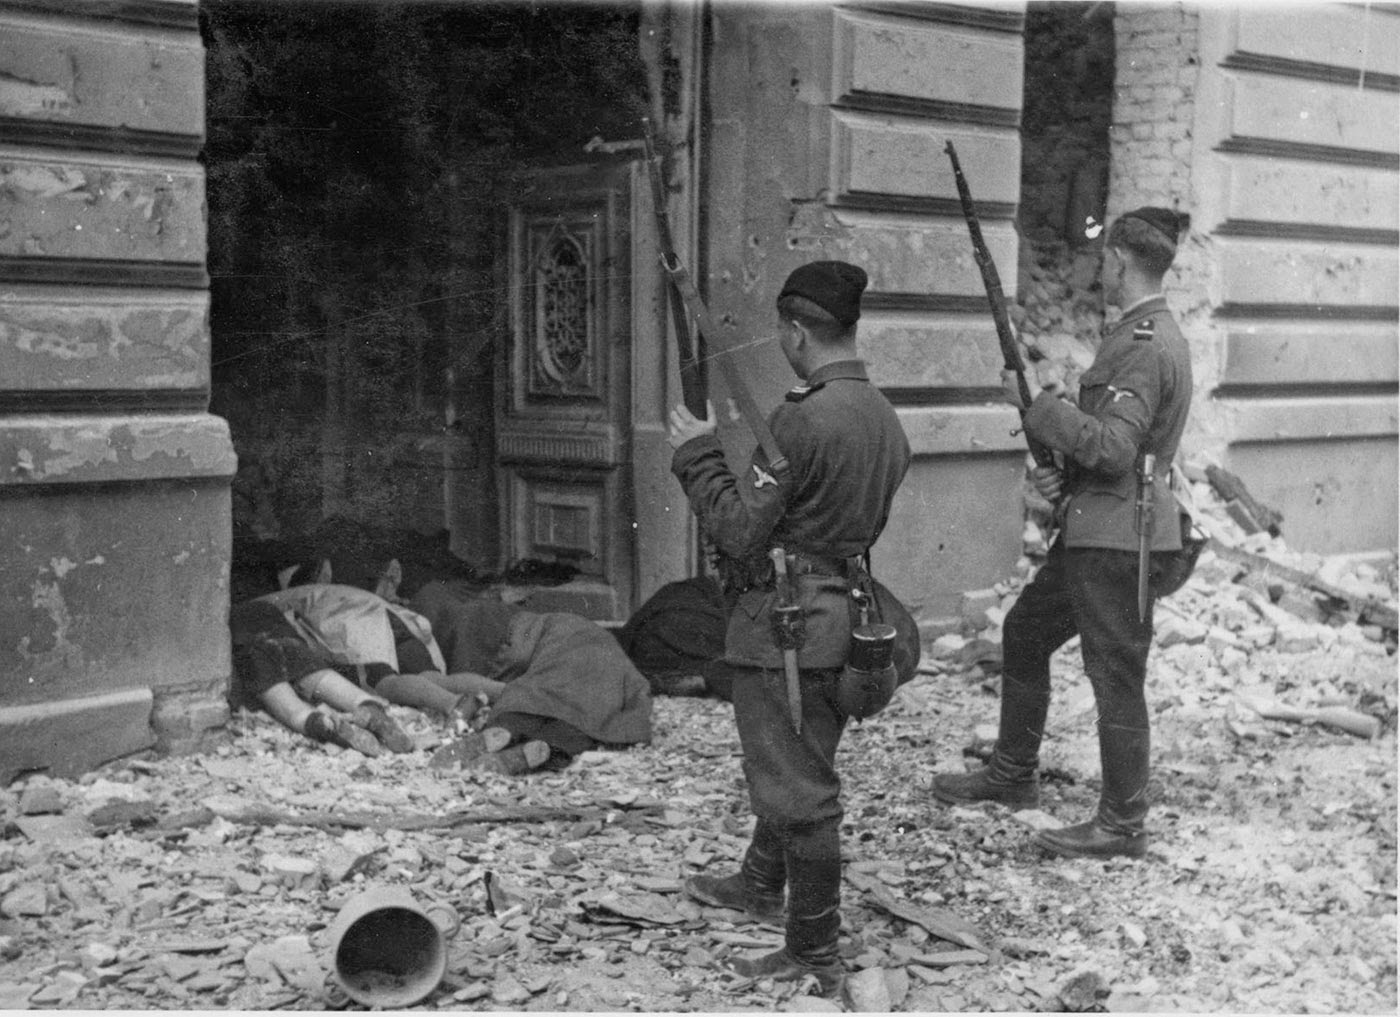 Two Ukrainian Askaris peer into a doorway past the bodies of Jews killed during the suppression of the Warsaw Ghetto Uprising, 1943.